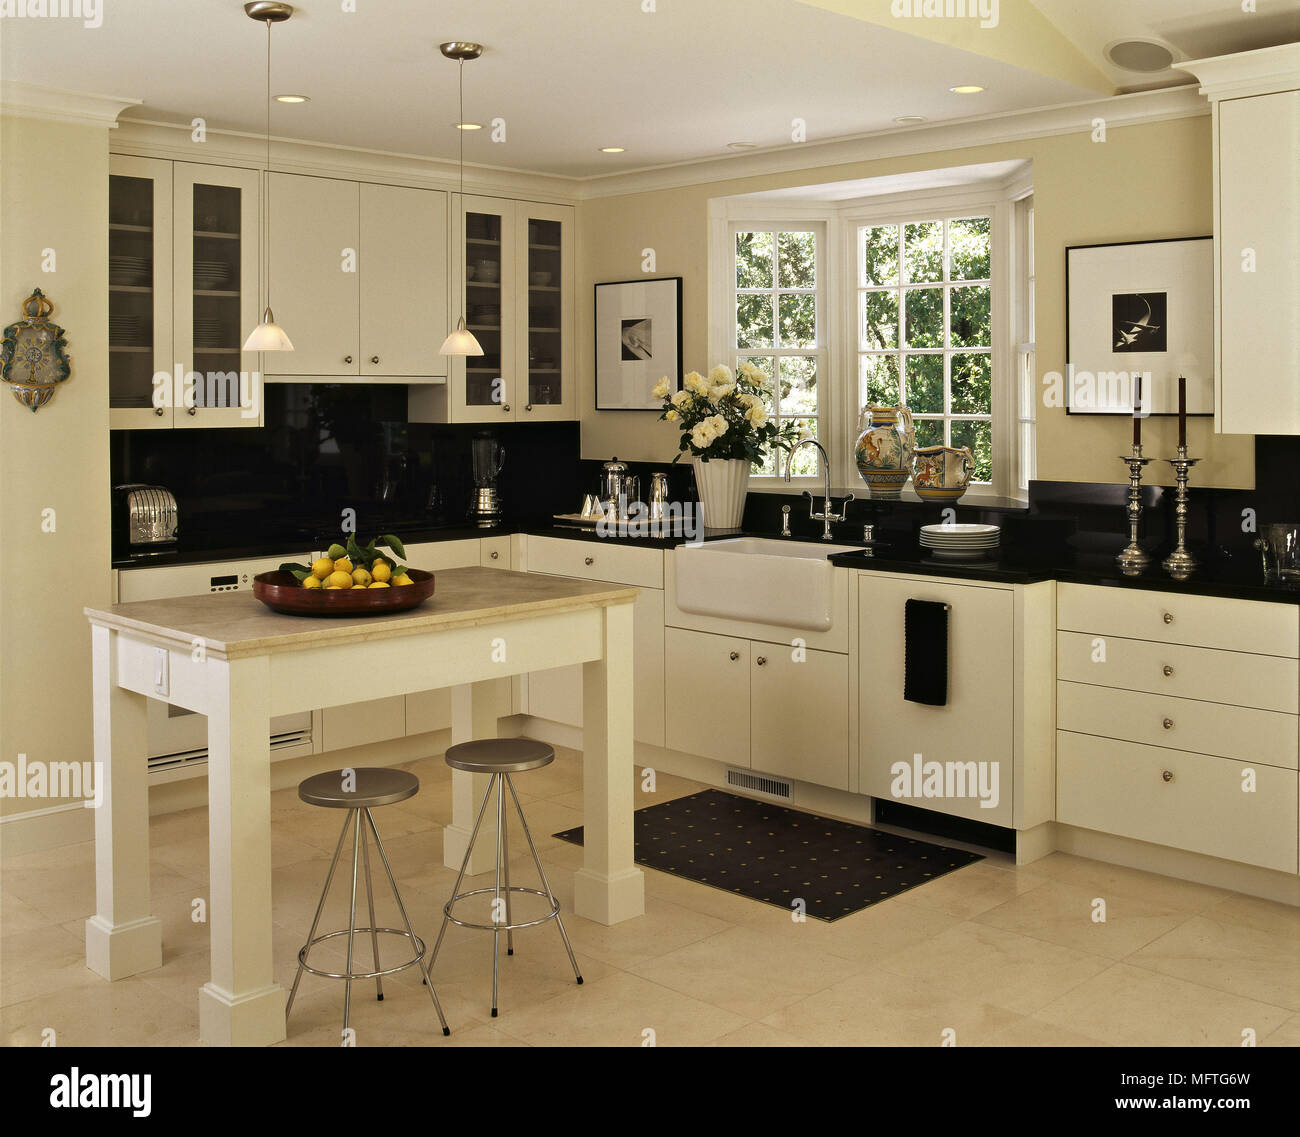 Cream Kitchen Black Worktops: Belfast Central Stock Photos & Belfast Central Stock